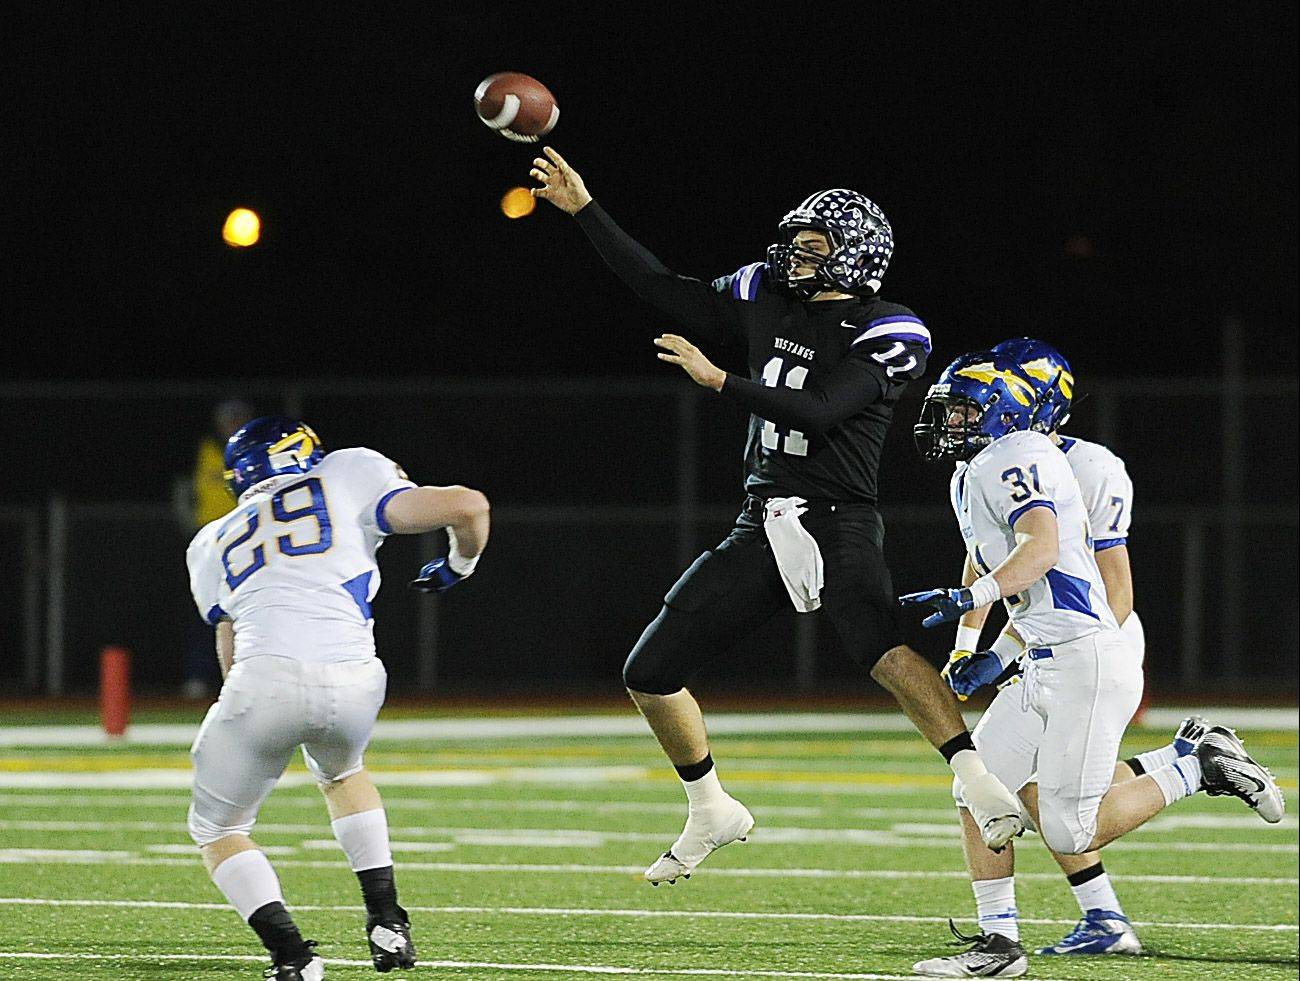 Rolling Meadows' Jack Milas lofts a pass from mid-air to Alex Niecikowski for a 64-yard completion in Class 6A first-round playoff action Friday at Meadows.